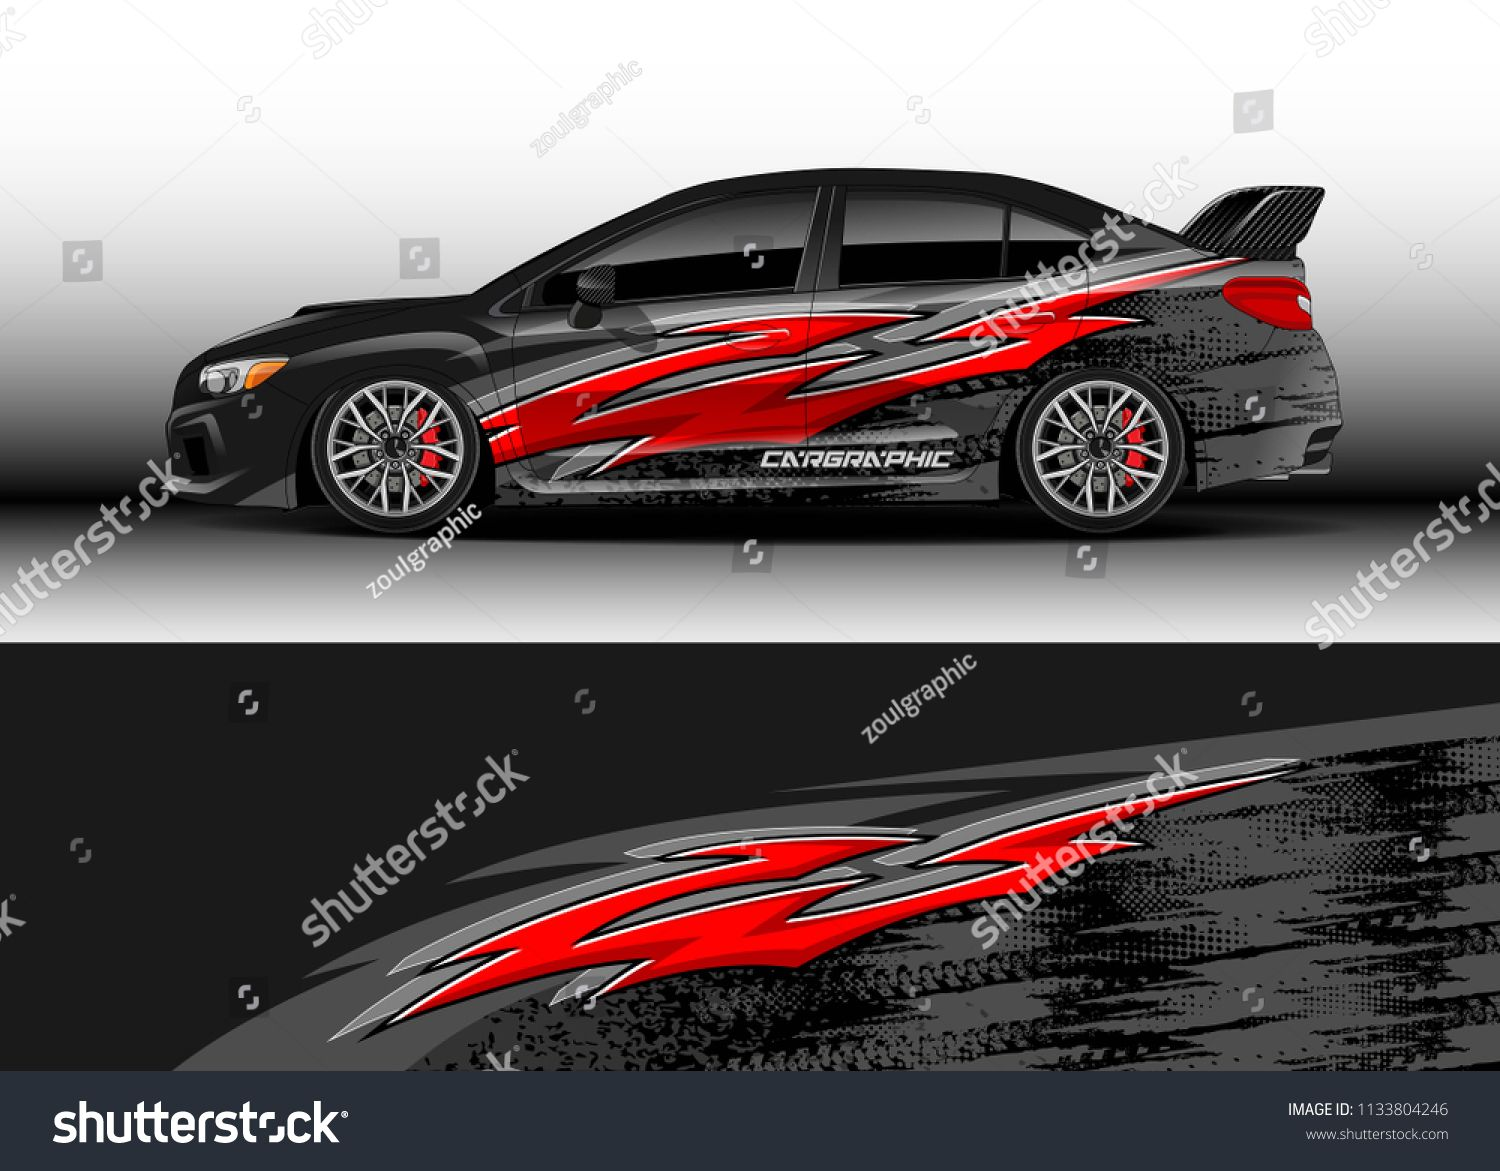 Car Decal Graphic Vector Wrap Vinyl Sticker Graphic Abstract Stripe Designs For Race And Drift Livery Car Best Family Cars Vinyl Wrap Car Car Decals [ 1171 x 1500 Pixel ]